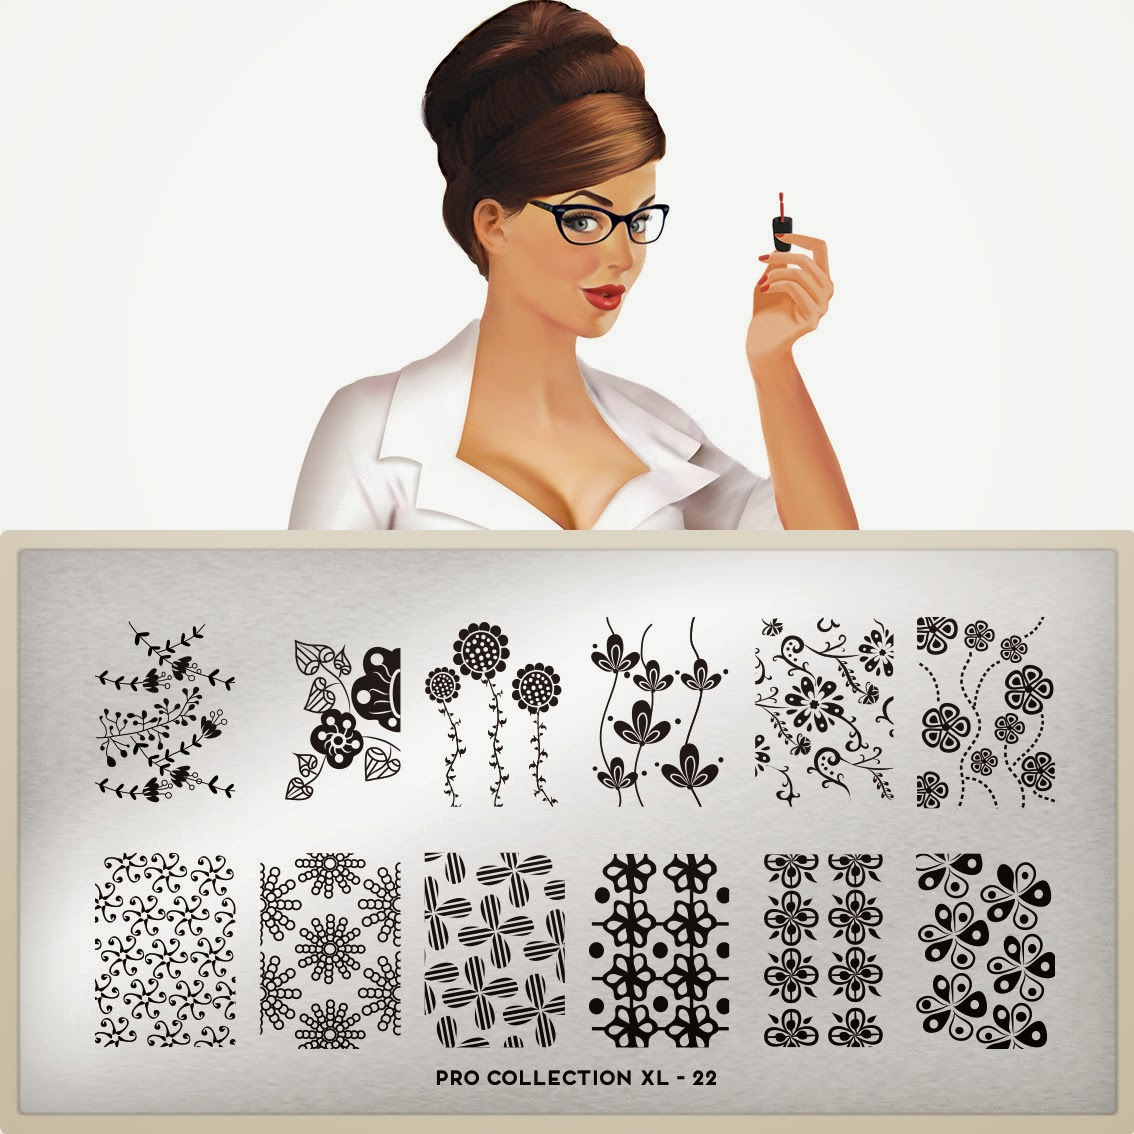 Lacquer Lockdown - MoYou London, MoYou London Pro Collection, new stamping plates 2014, new nail art stamping plate s2014, new nail art image plates 2014, nail art stamping blog, nail art stamping, nail art, stamping, diy nail art, cute nail art ideas, Pro Collection, floral nail art, flow nail art